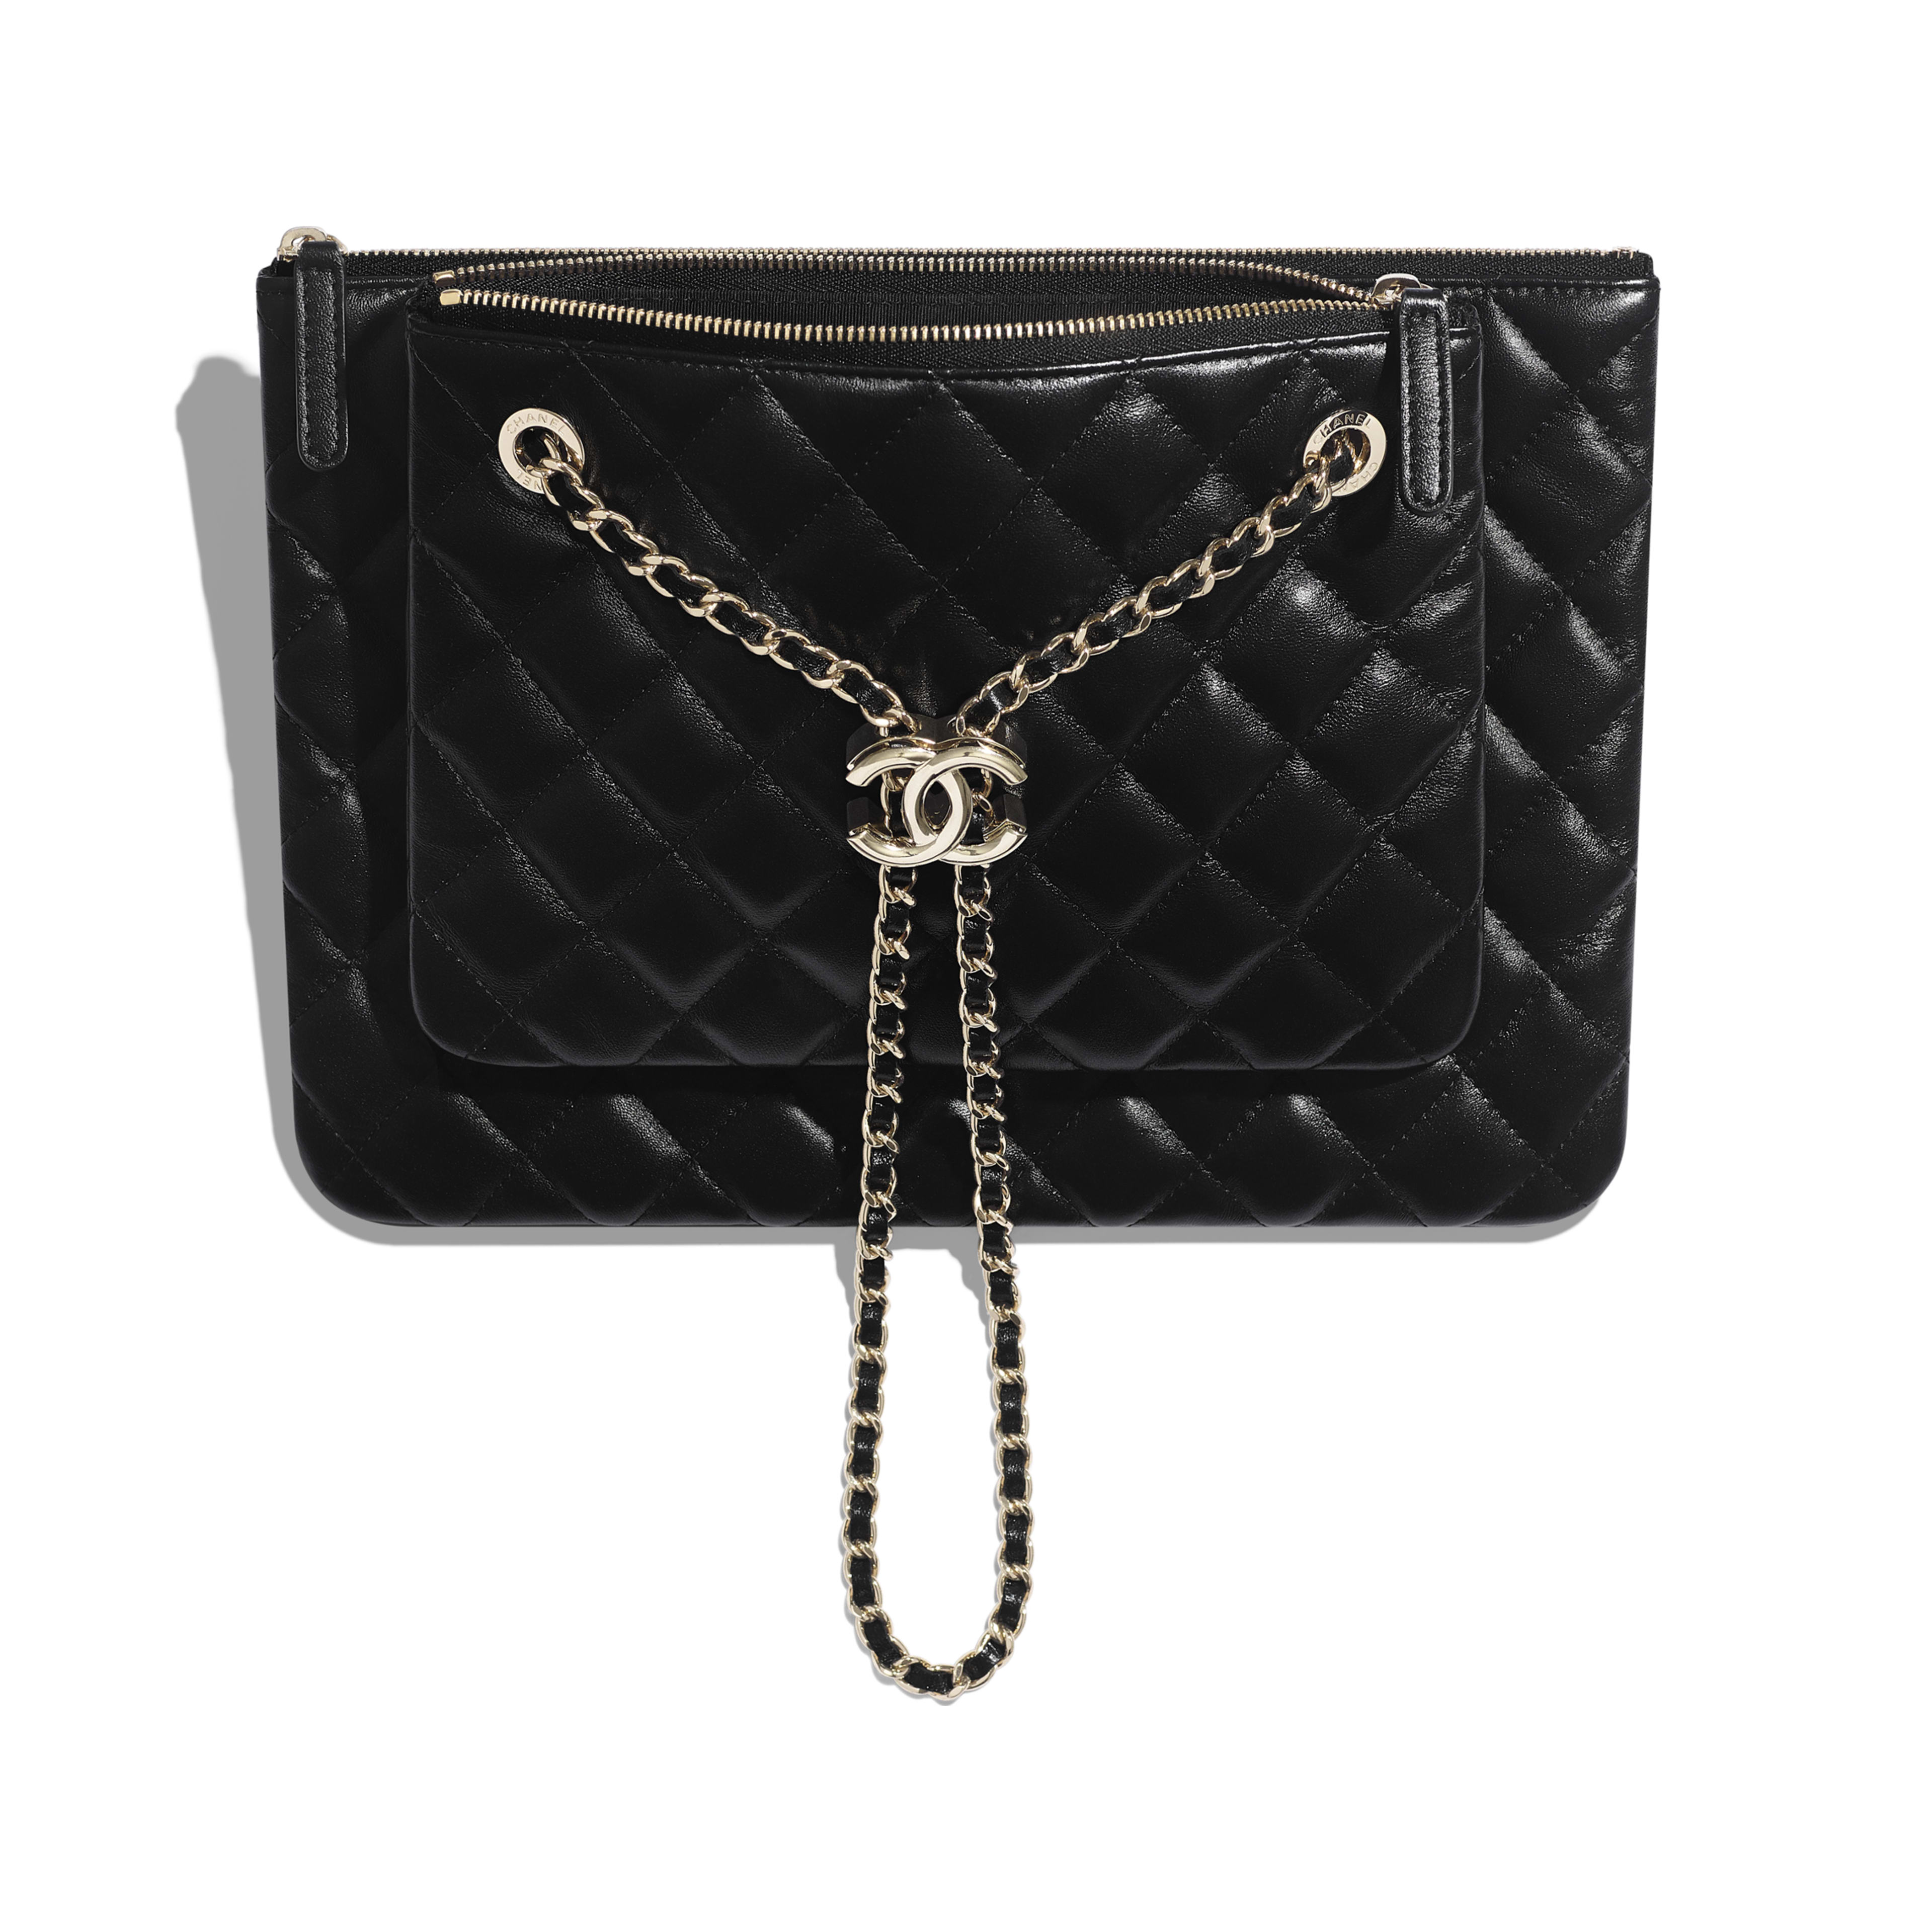 Clutch With Chain - Black - shiny lambskin & gold-tone metal - Other view - see full sized version